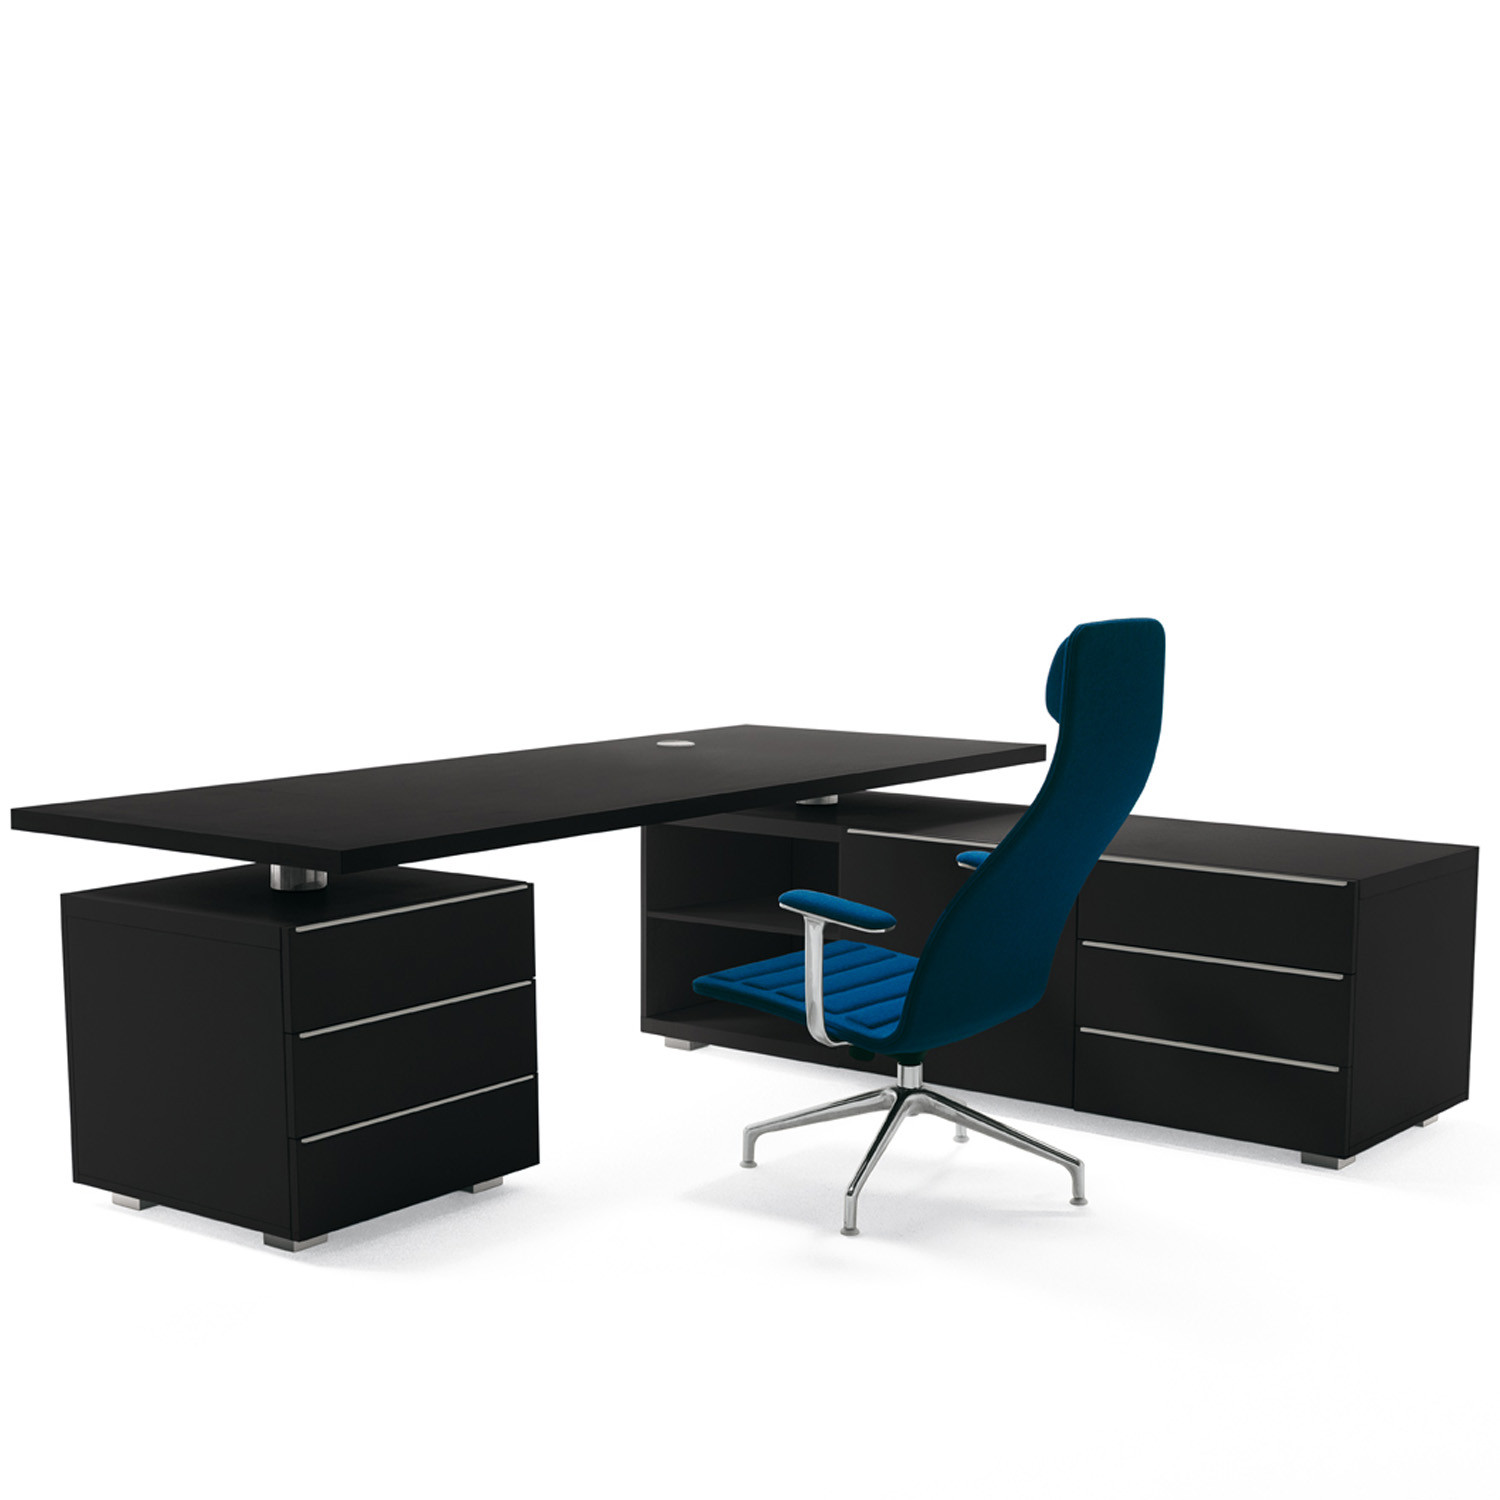 Senior Executive Desk Management Desk Apres Furniture